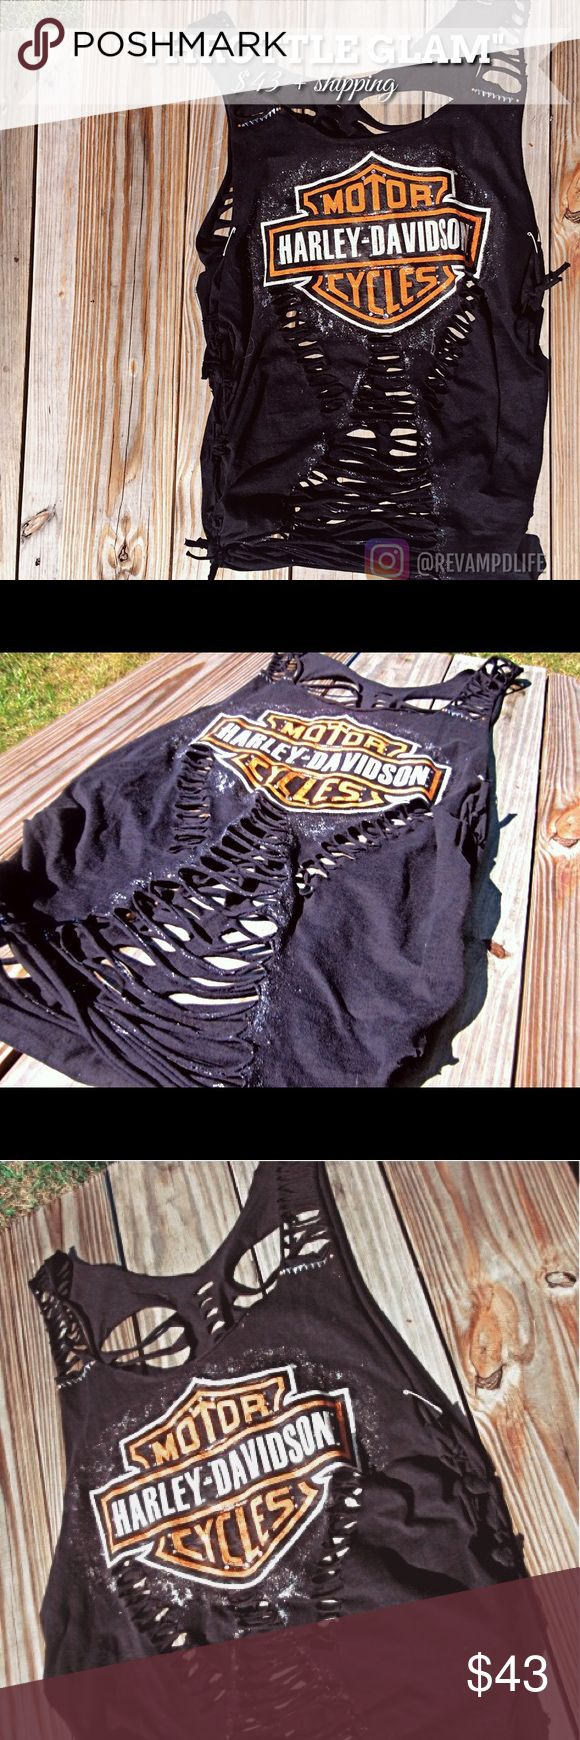 """Upcycled revamped Harley Davidson shirt • """"THROTTLE GLAM"""" has been distressed, weaved and embellished with rhinestones and flashy glitter (hard to tell in photos :(). Somewhat baggy and see through •  • size: medium •  --Ask for bundles to save $$ • always accepting offers!--   #harleydavidson  #motorcycle #biker #bling #motorcyclerally #sturgis #rhinestone #embellished  #cutup #distressed #revamped #restyled #laconia #bikeweek #ladiesofharley #ftw #throttleworld #ollady #customclothes…"""